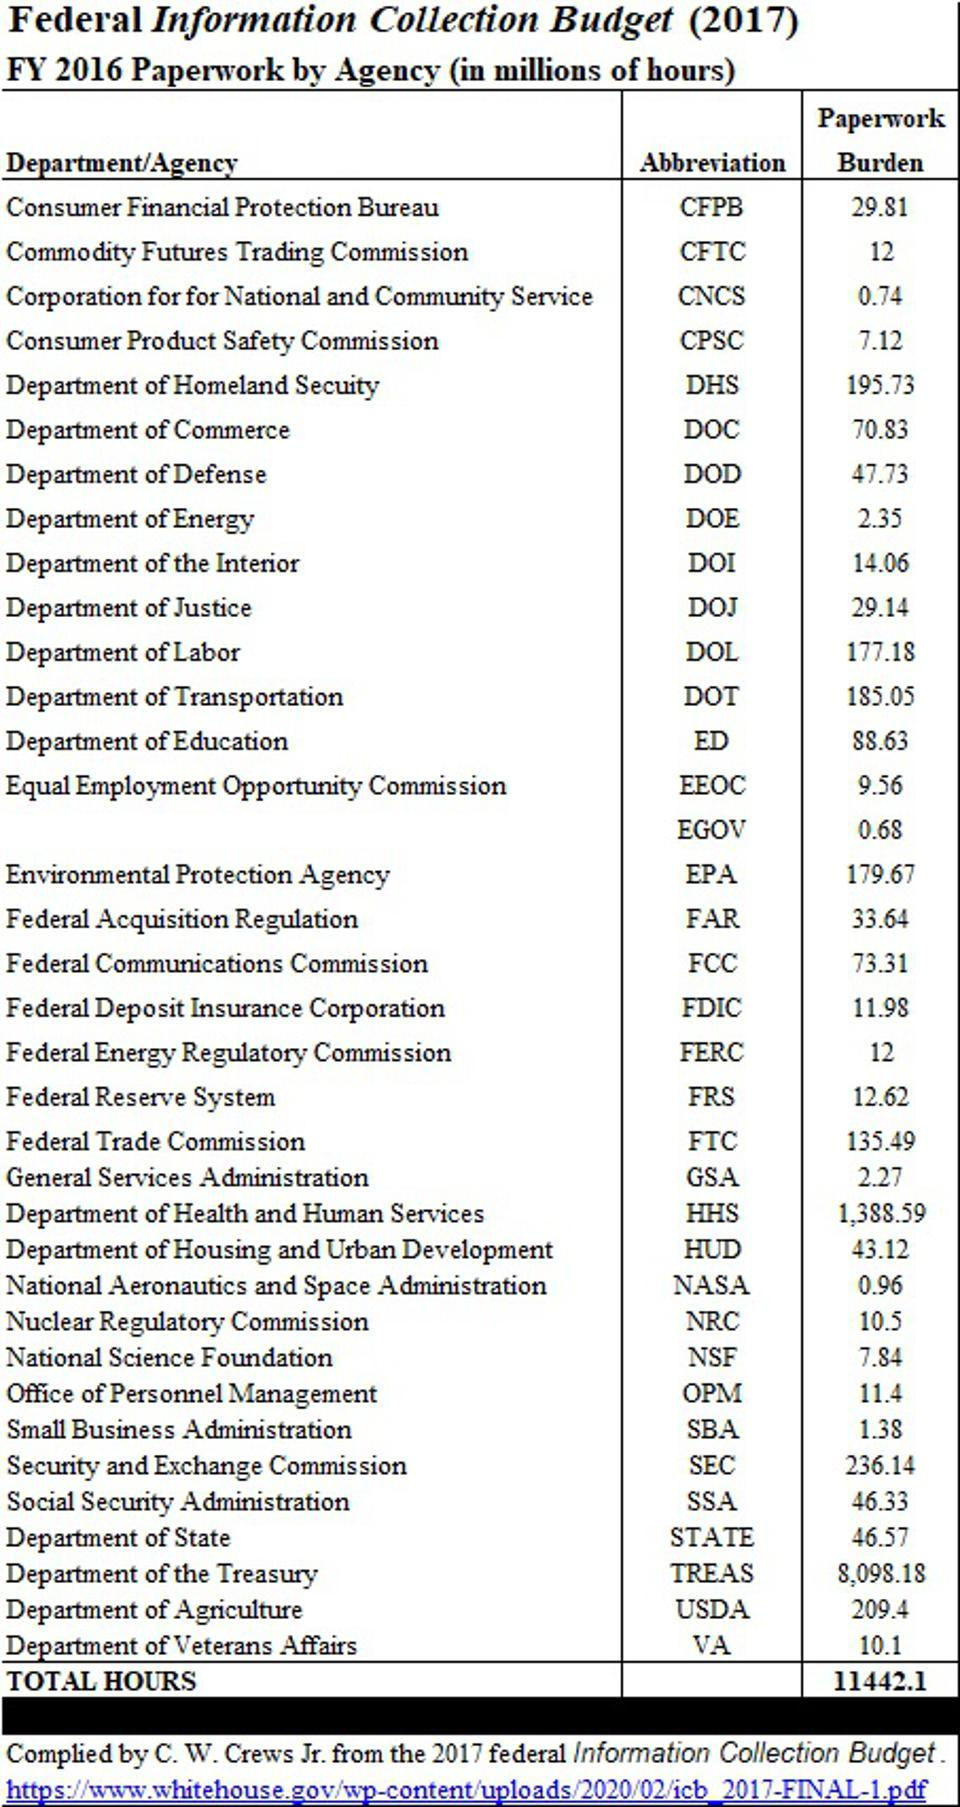 Federal Information Collection Budget 2017, table compiled by author